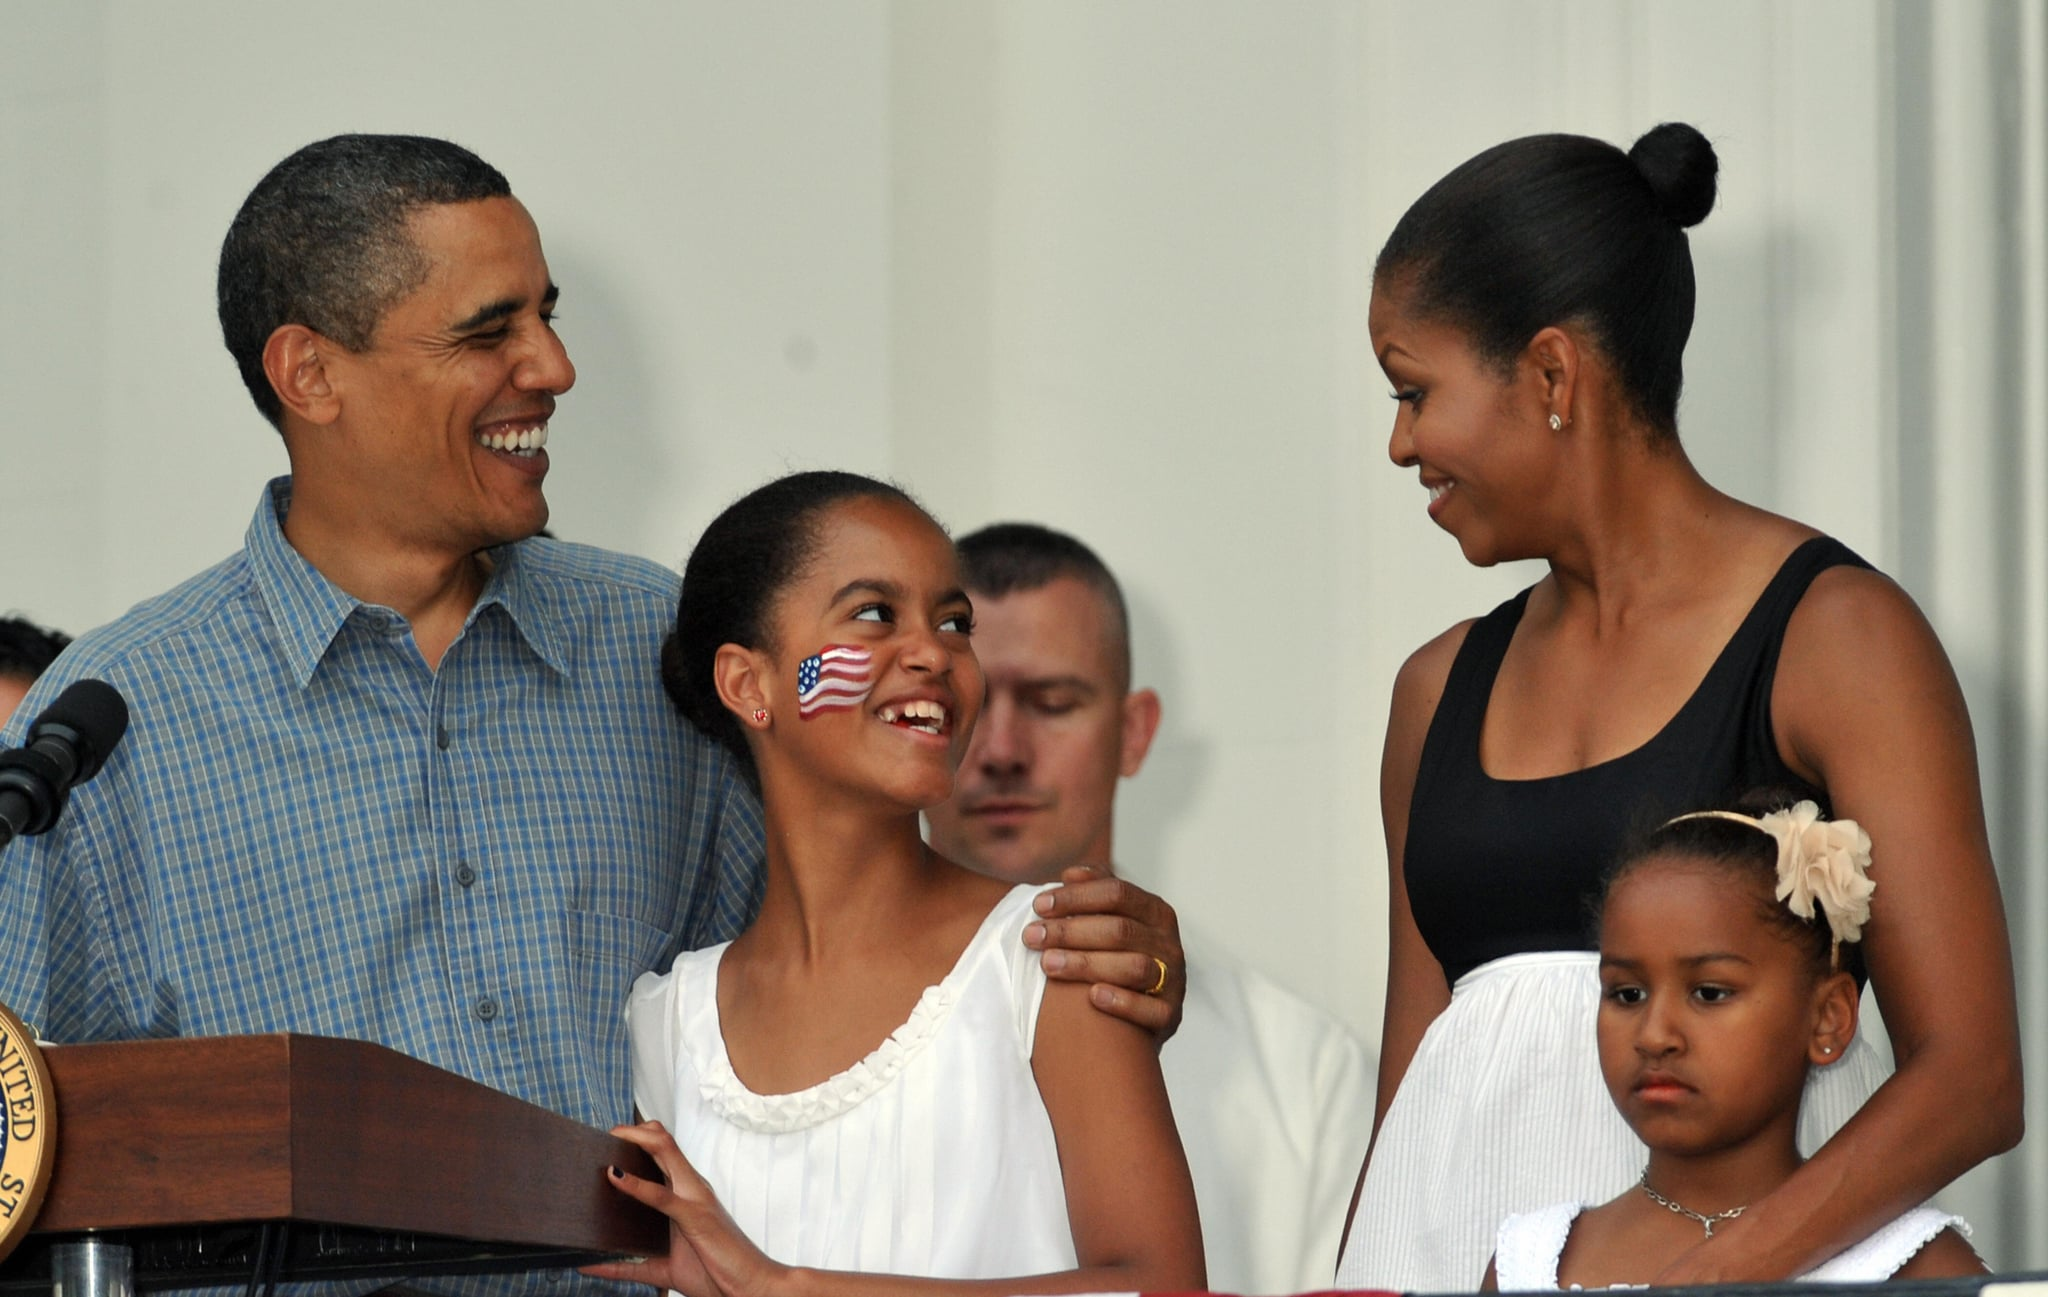 In 2009, the Obamas honored military heroes and their families on the South Lawn of the White House.